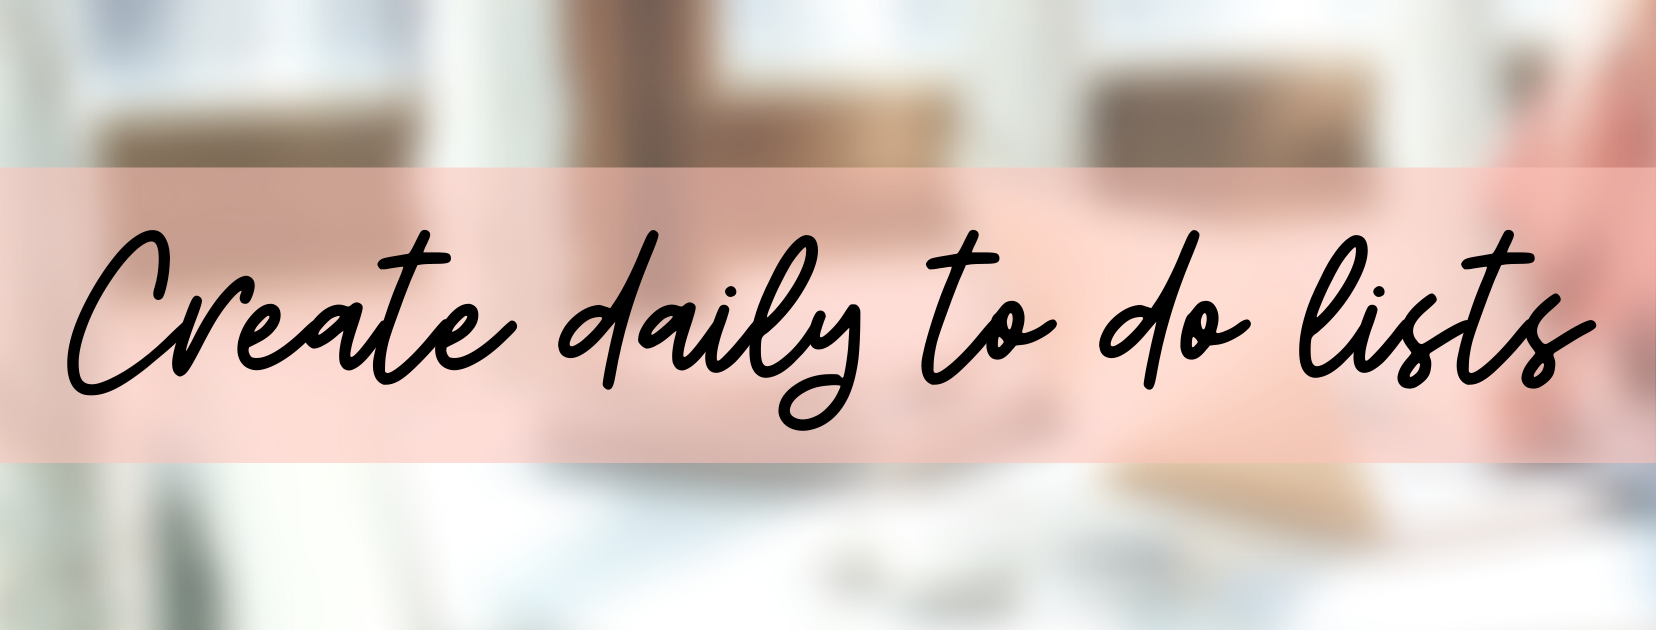 Students: create daily to do lists.